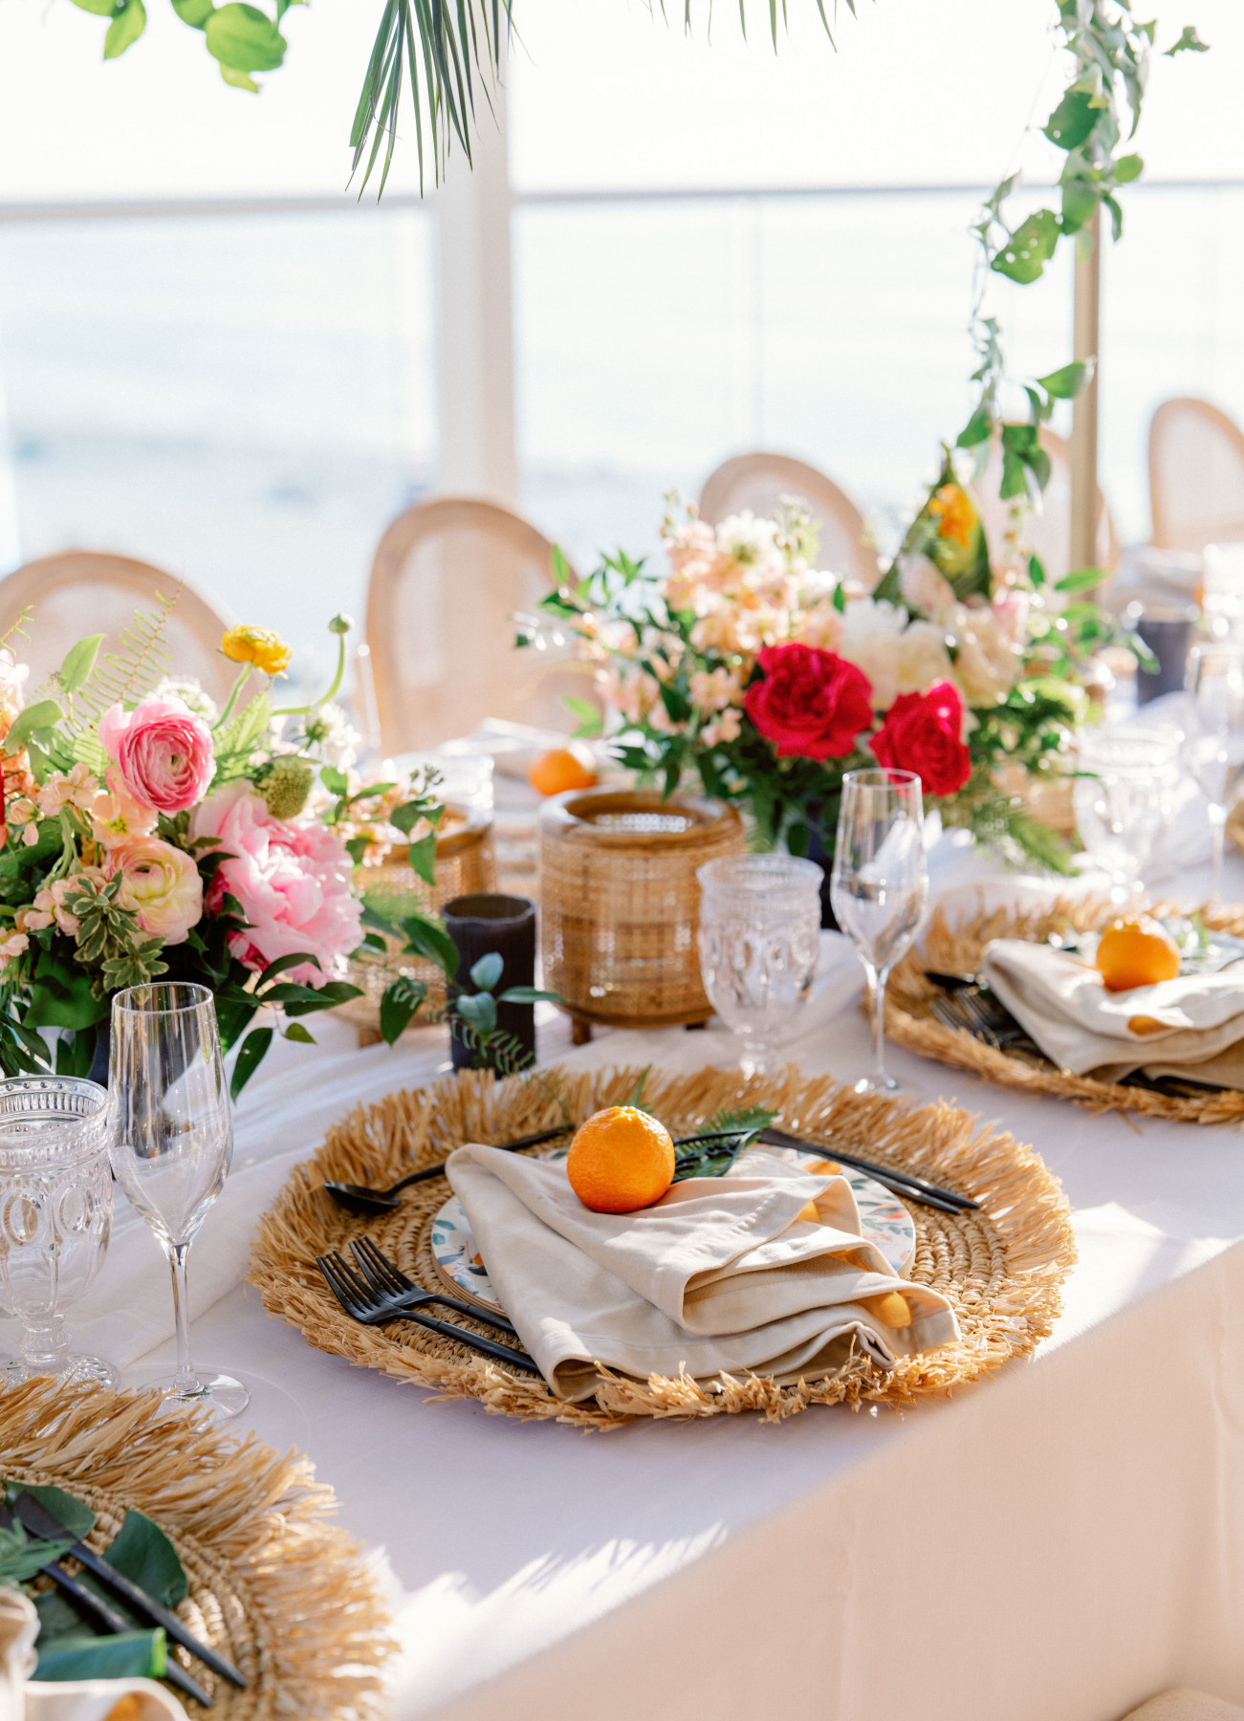 reception tables with floral centerpieces and oranges